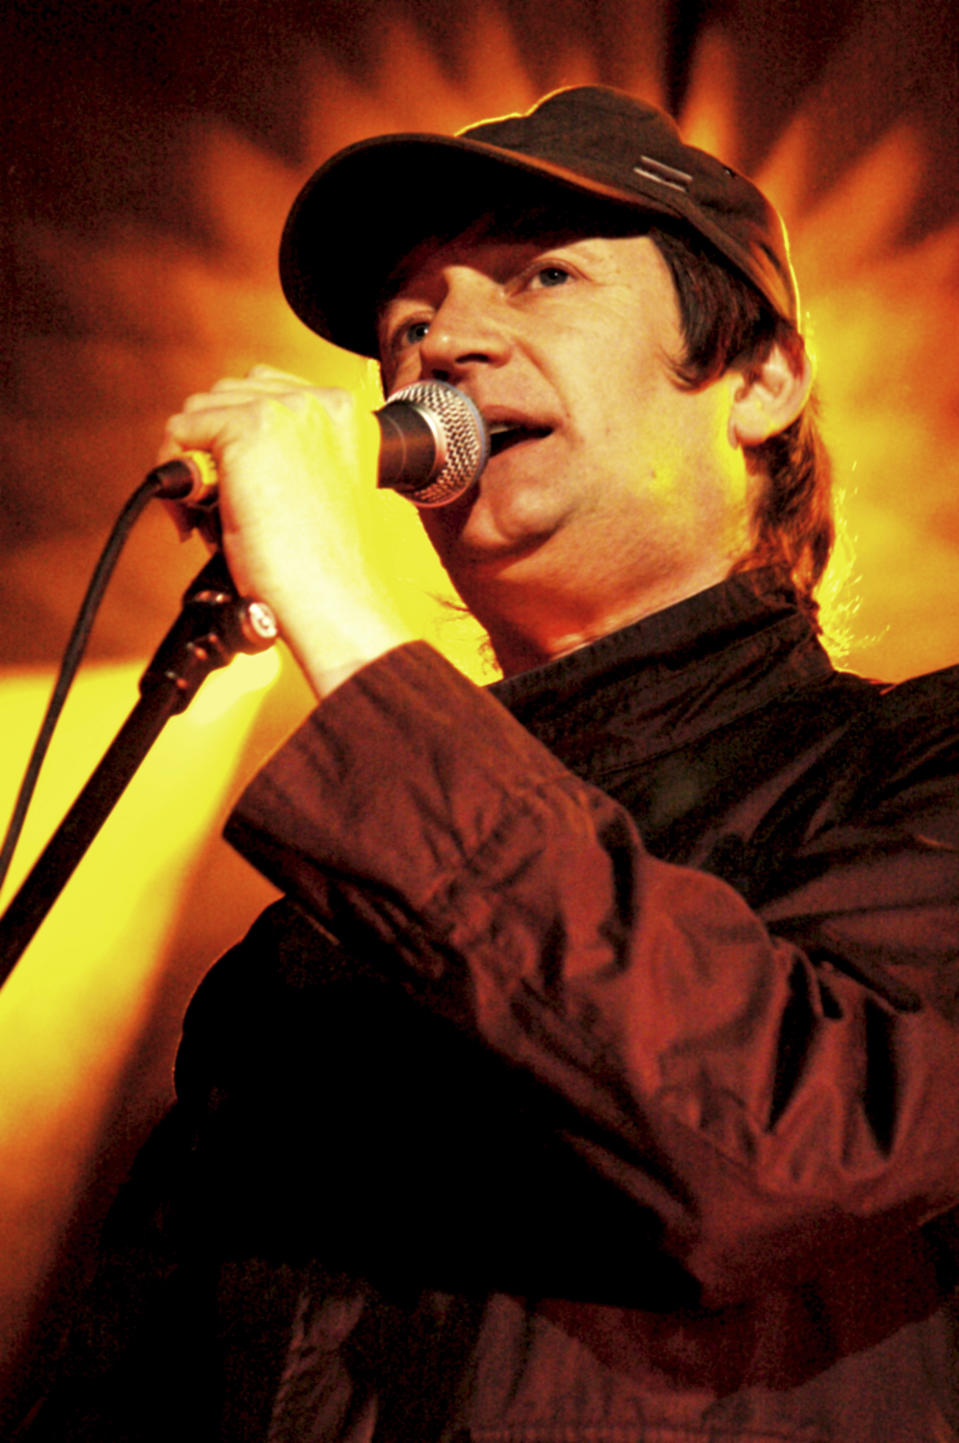 Paul Heaton lead singer from band The Beautiful South in concert performing live at the Shepherds Bush Empire, London on the 31st May 2006.; Job: 12076 Ref: ZB3076_166745_128DDO; (Photo by Daniela D'Amato/Photoshot/Getty Images)